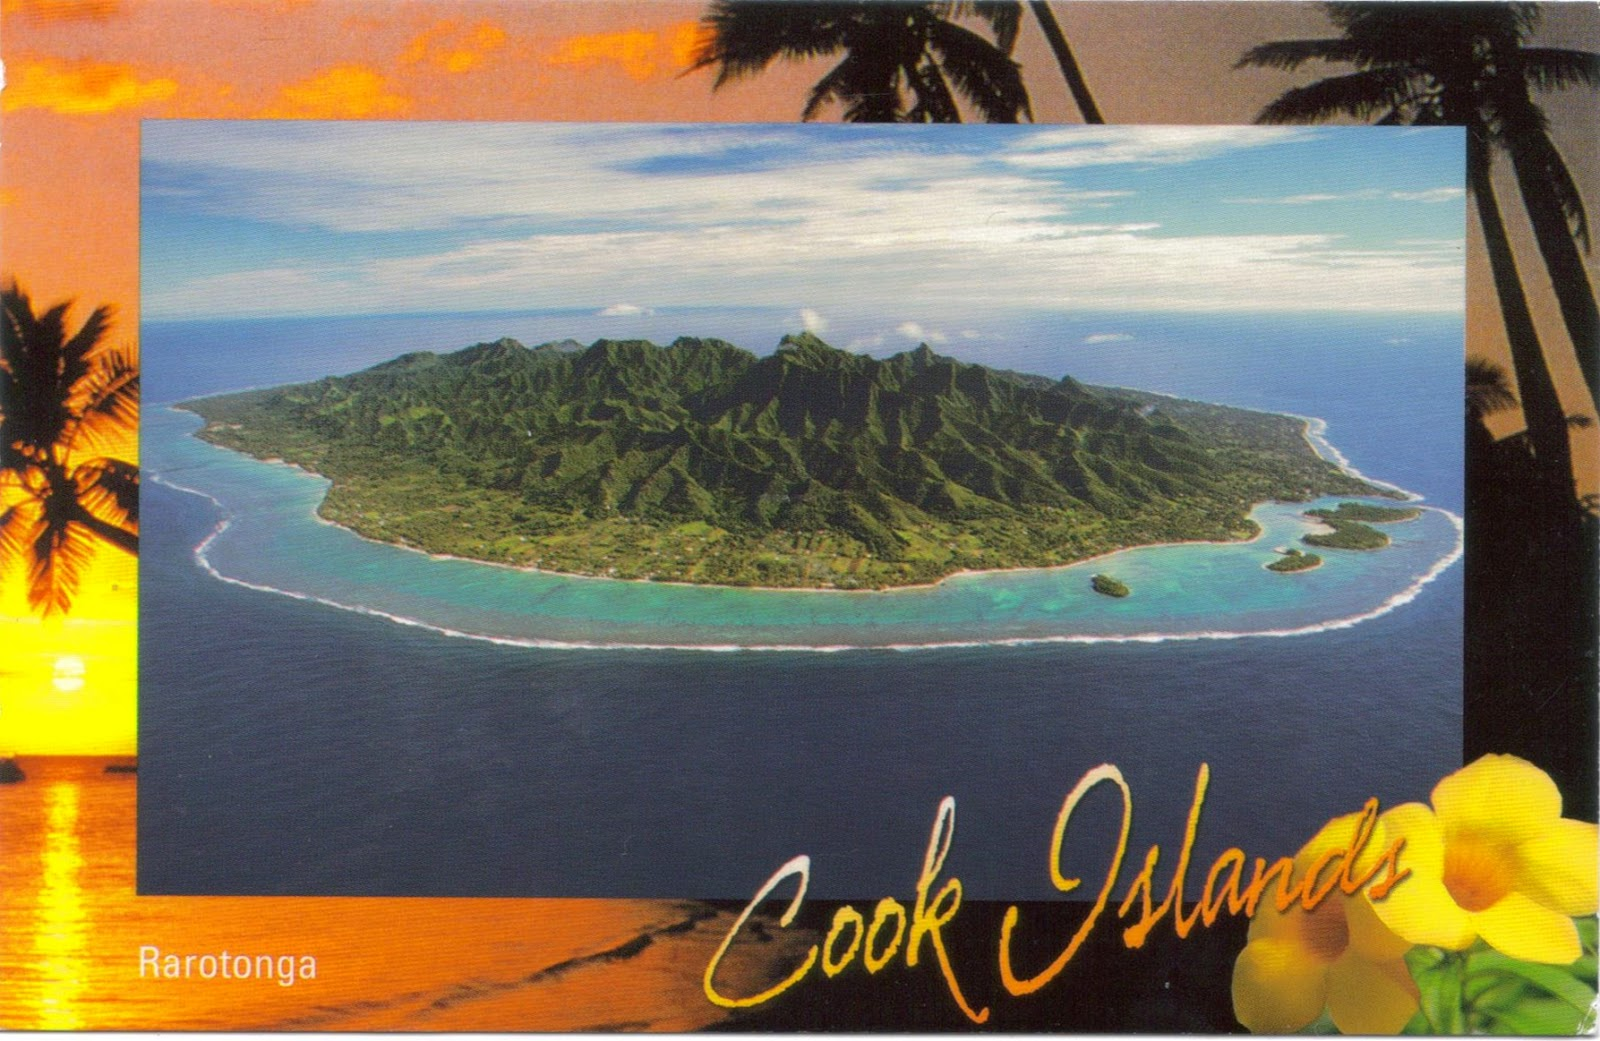 Rarotongo, Cook Islands